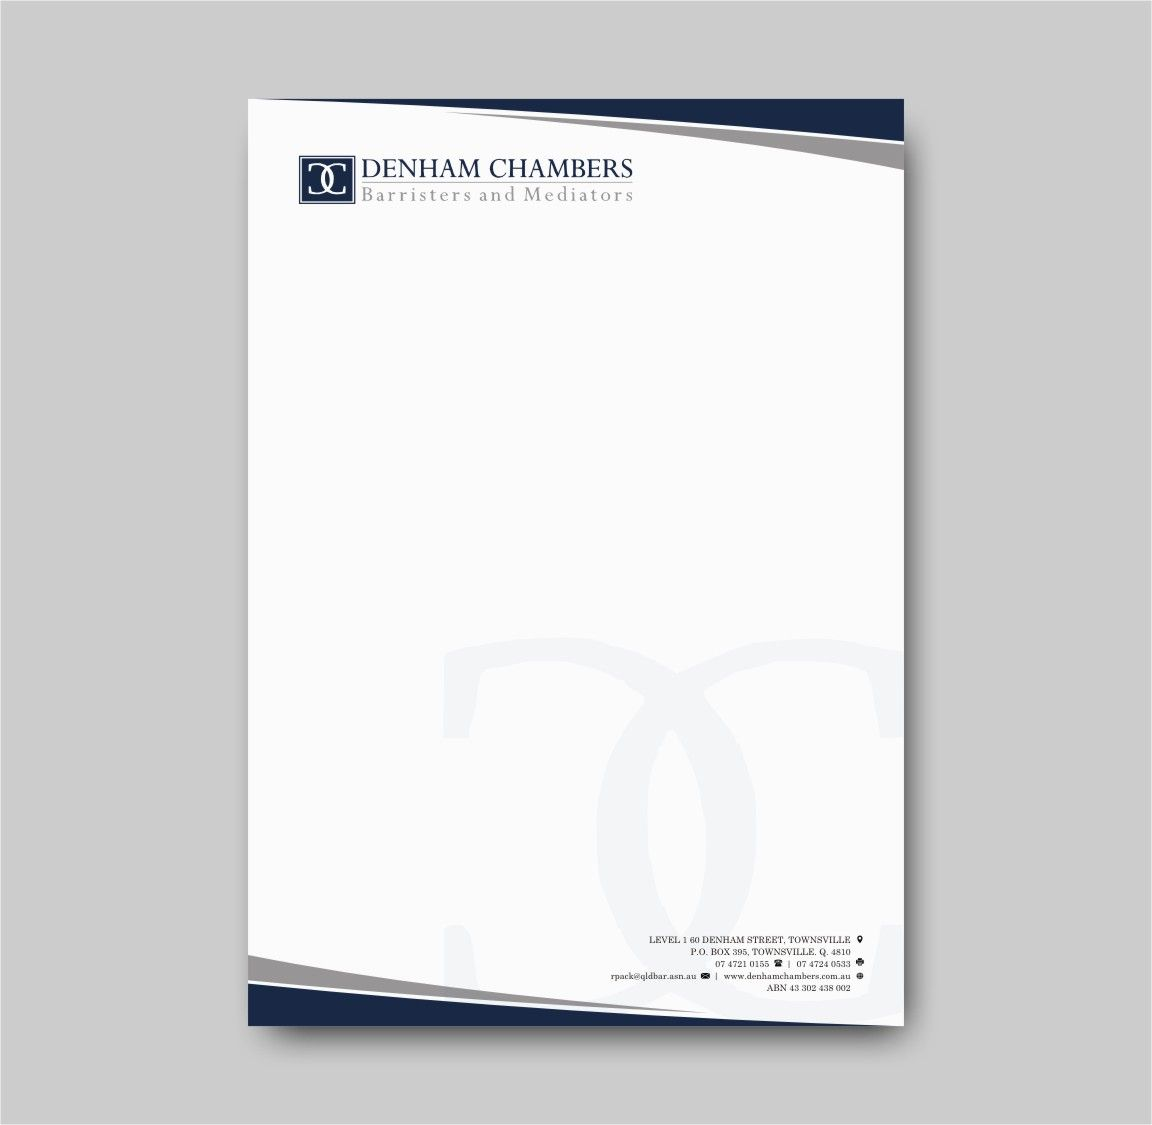 Modern, Professional, Legal Letterhead Design for a Company.